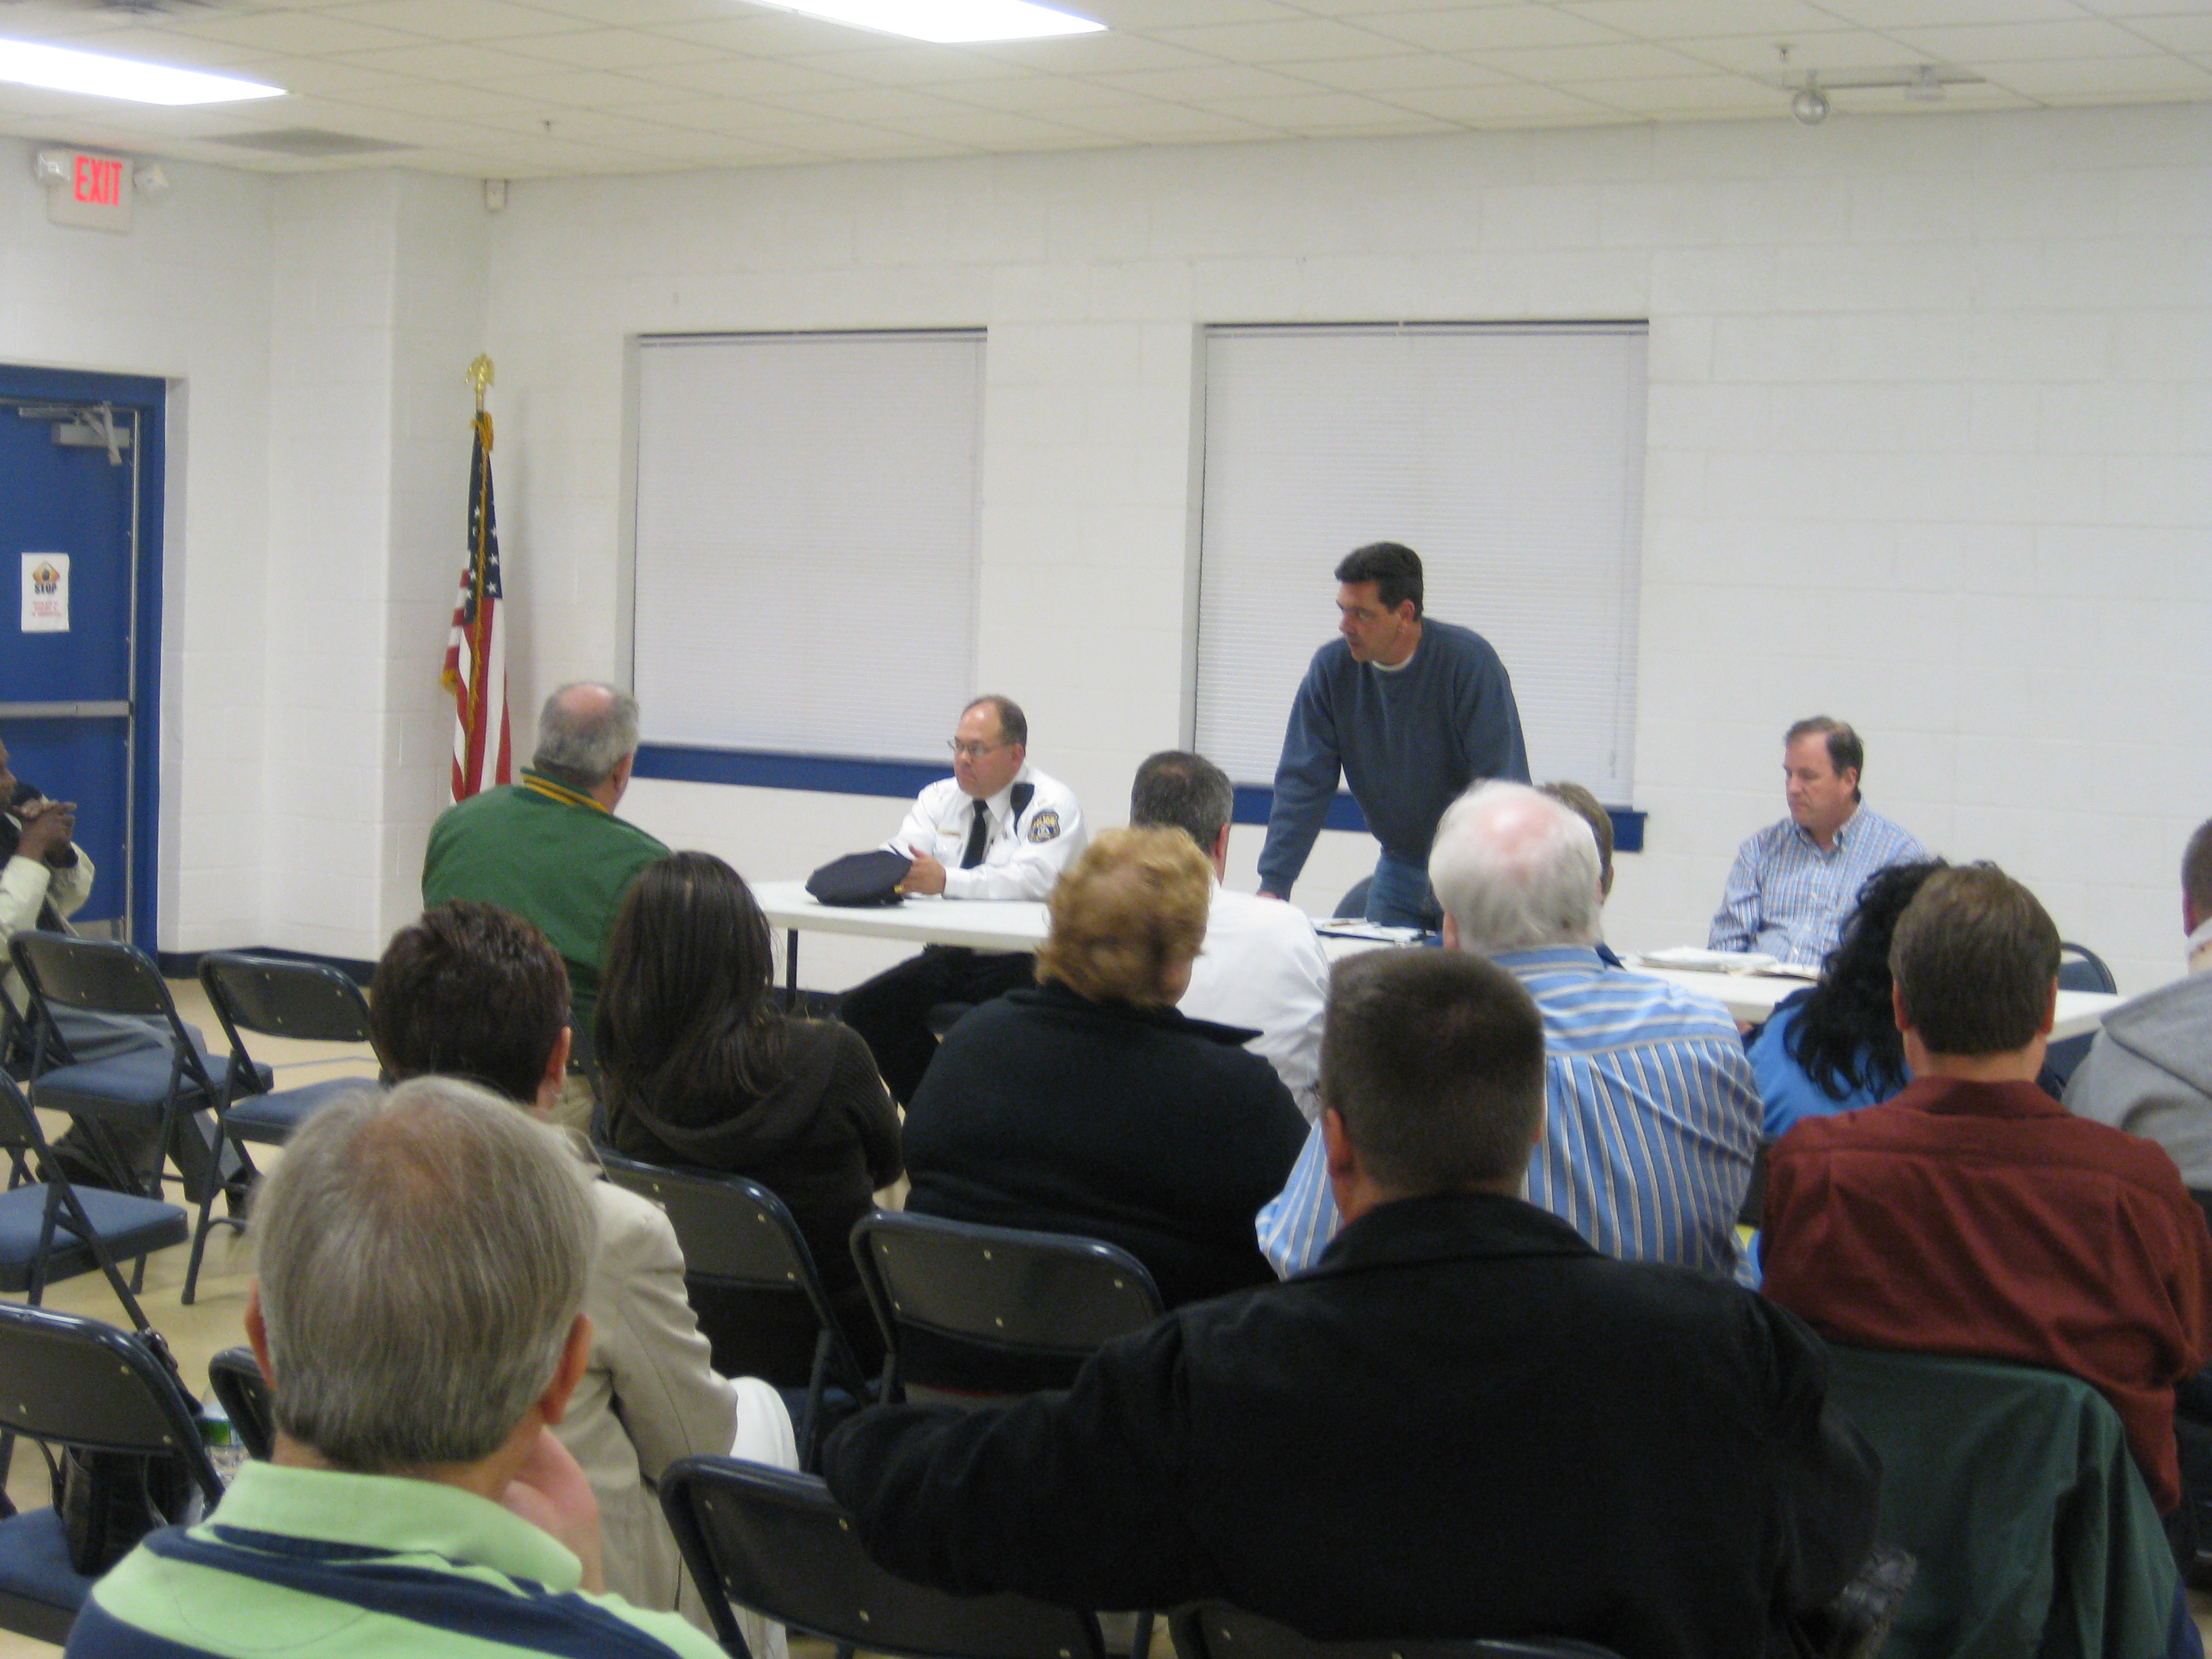 Mayfair Town Watch president John Vearling (center) takes suggestions from members of the newly formed group.